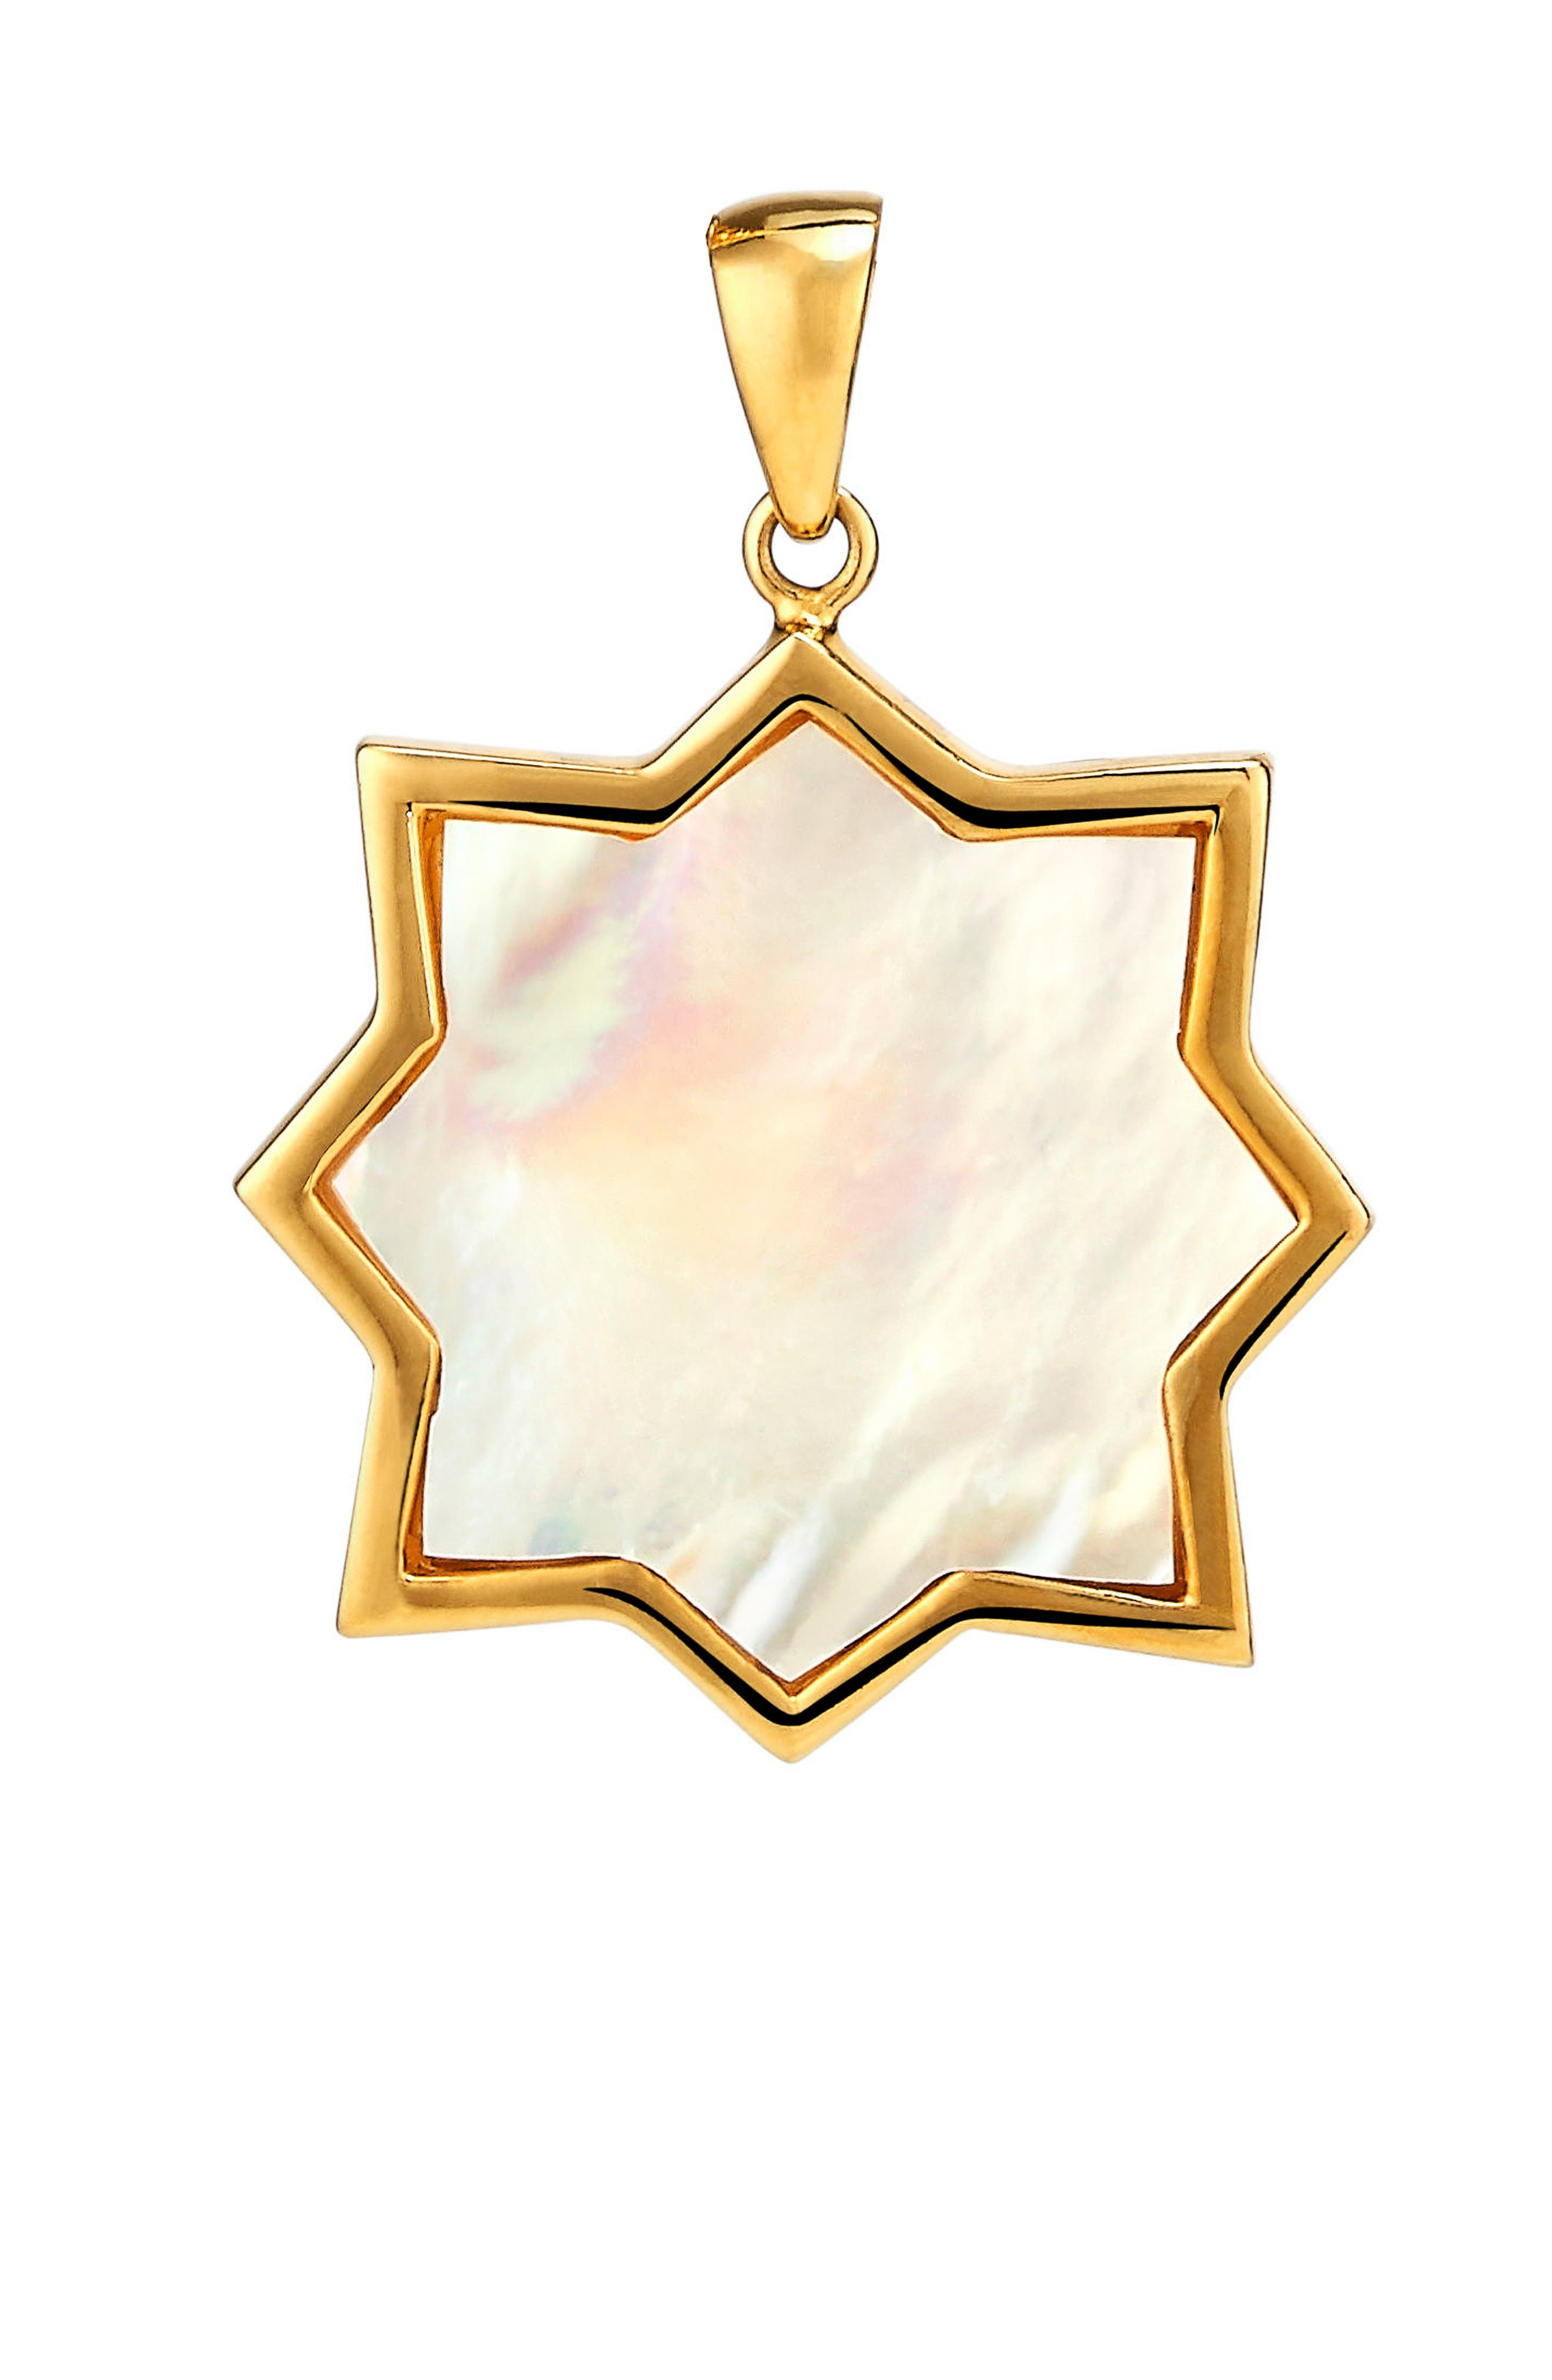 Kismet Large Mother-of Pearl Charm,                             Main thumbnail 1, color,                             100